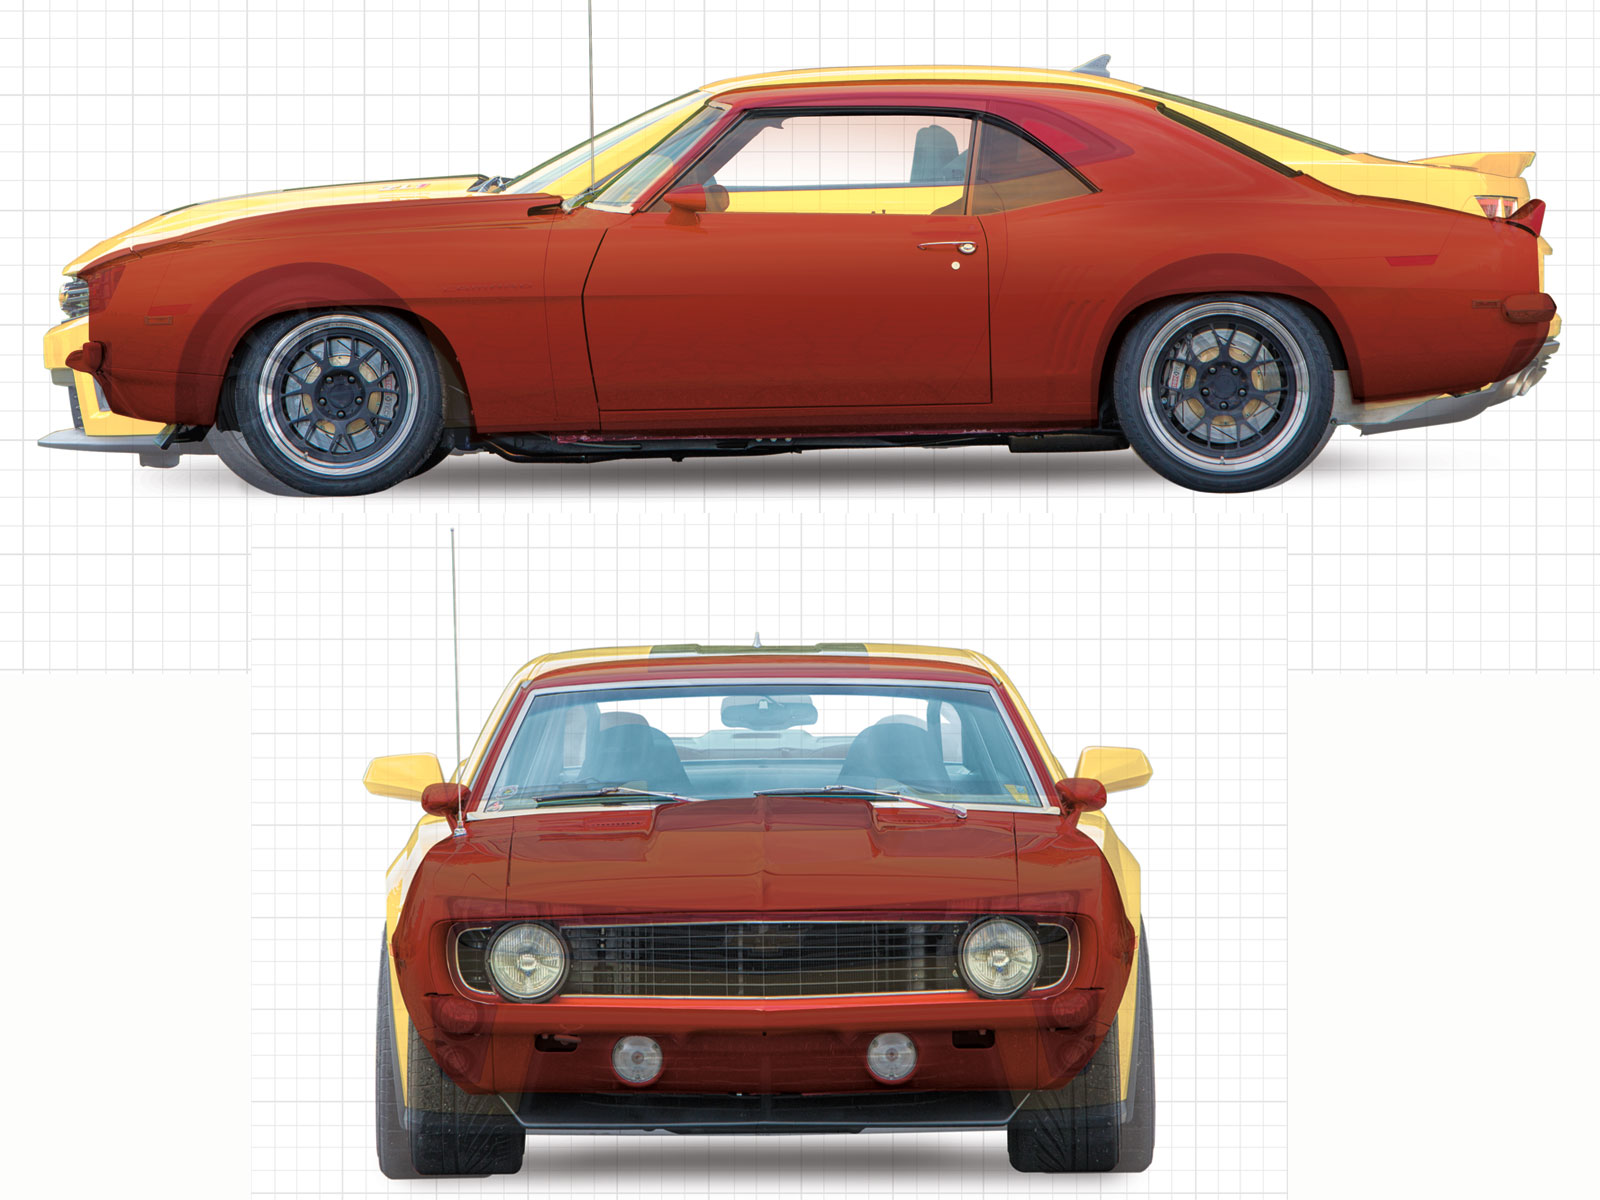 This comparison reveals the size diference between the two cars. The new ZL1 has a wheelbase of 112.3 inches and a track width of 63.7, while the '69 stretches 108 inches with a 59-inch track. The ZL1's wider stance is a handling advantage. Its 4,120 pounds are not, especially in competition with the Red Devil's 3,550.